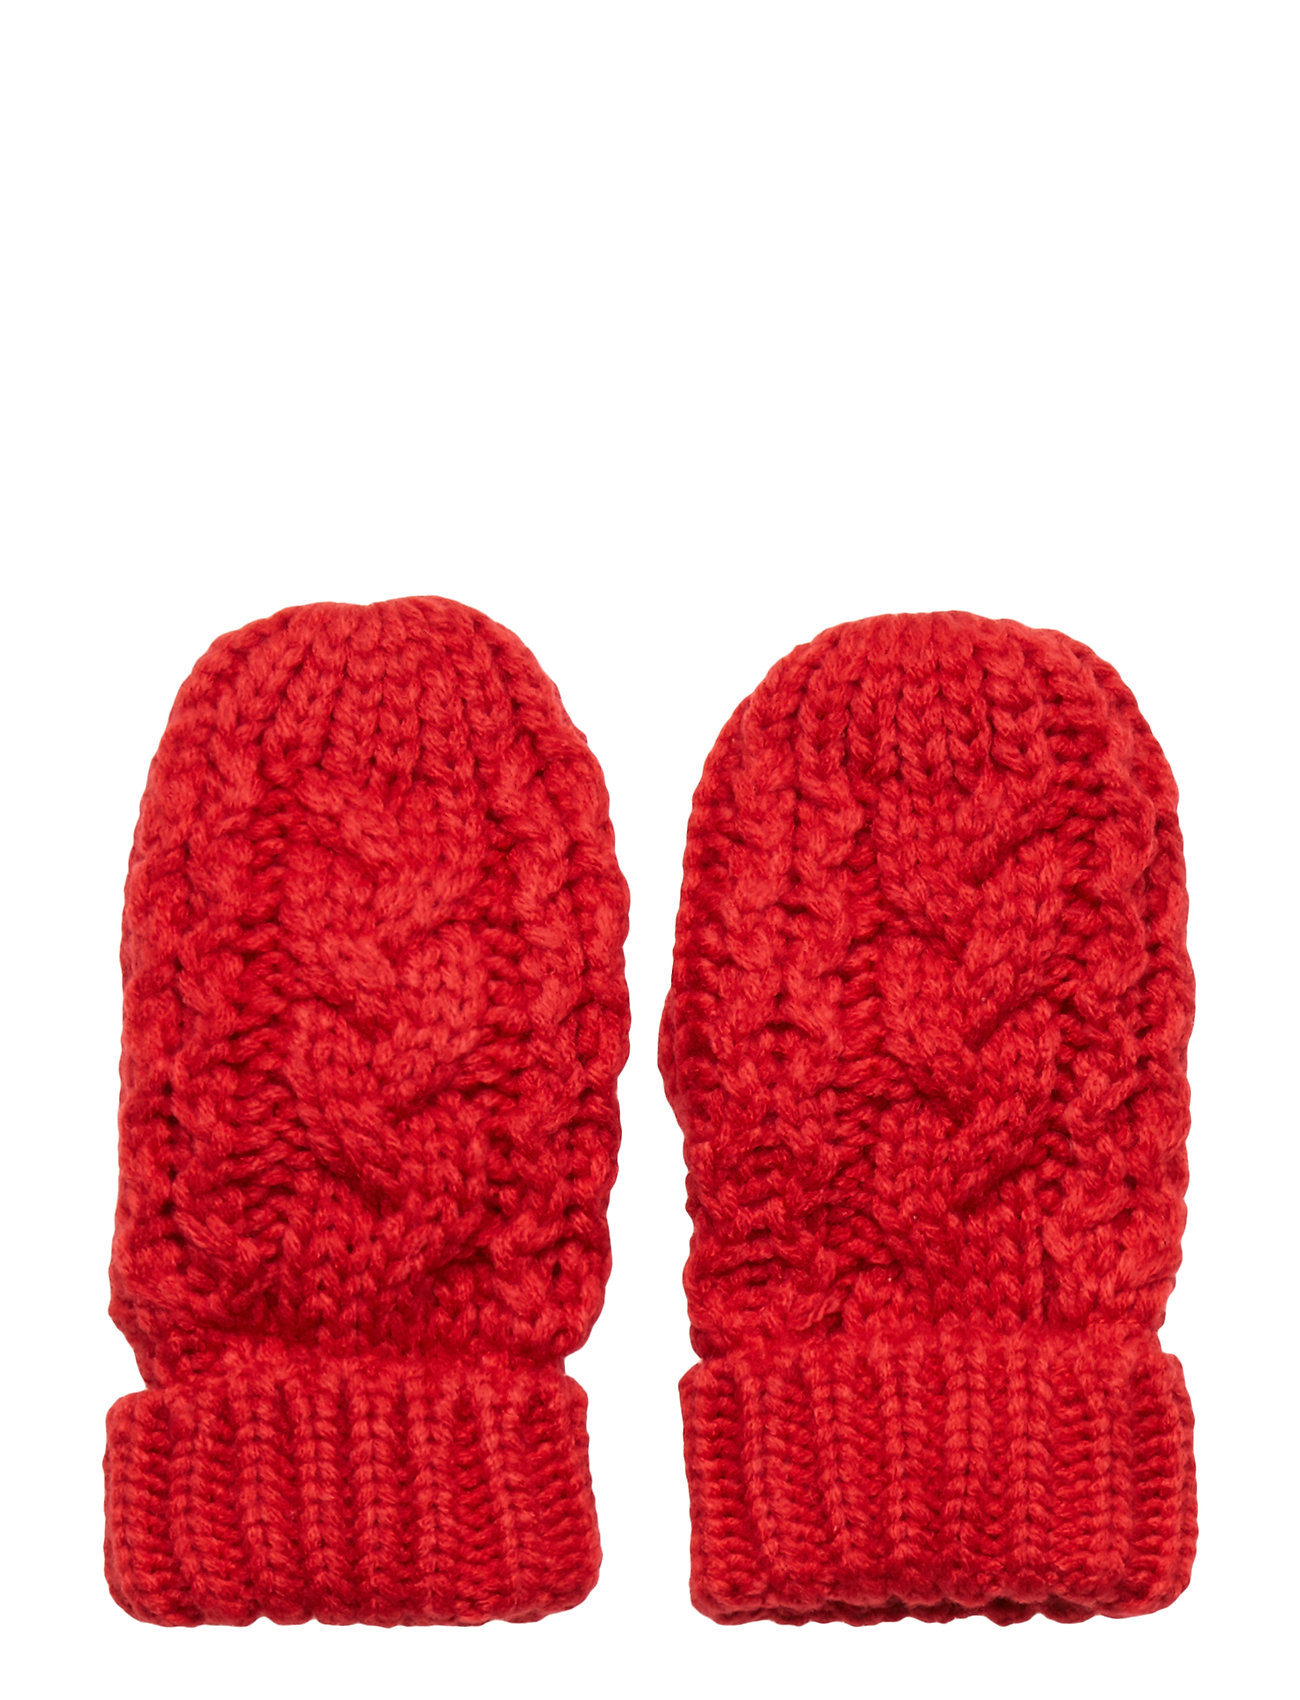 GAP Toddler Cable-Knit Mittens - MODERN RED 2